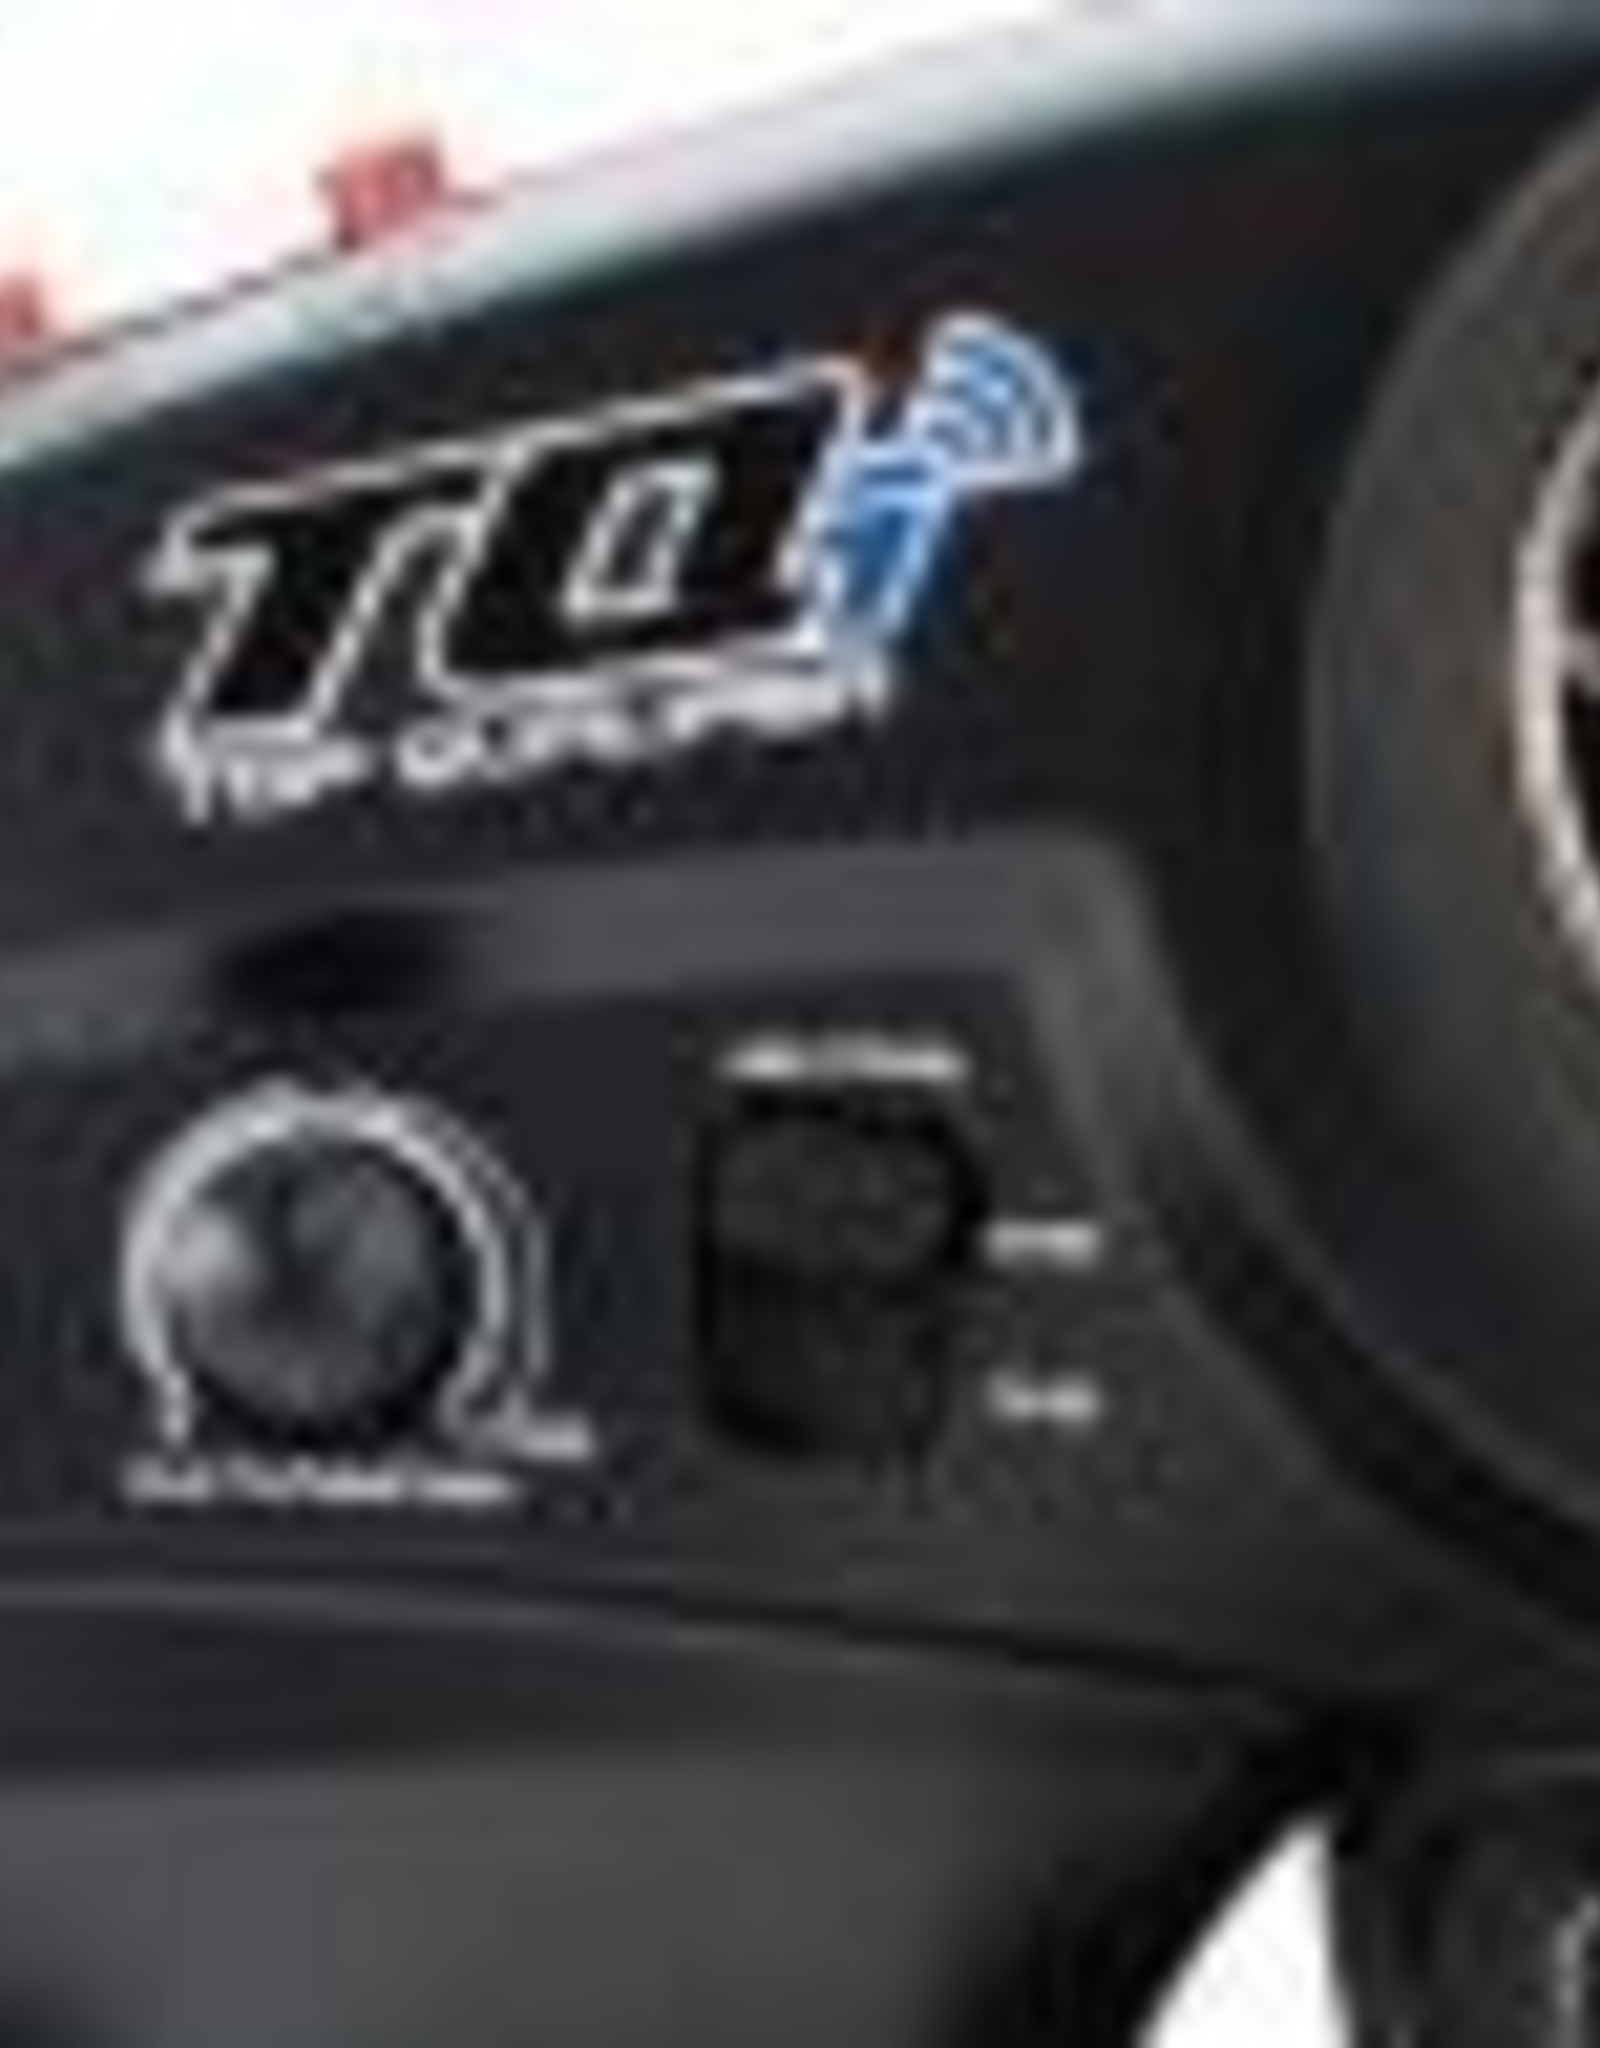 Traxxas Traxxas TQi 2.4GHz (2-Channel) Intelligent Radio System With Traxxas Stability Management